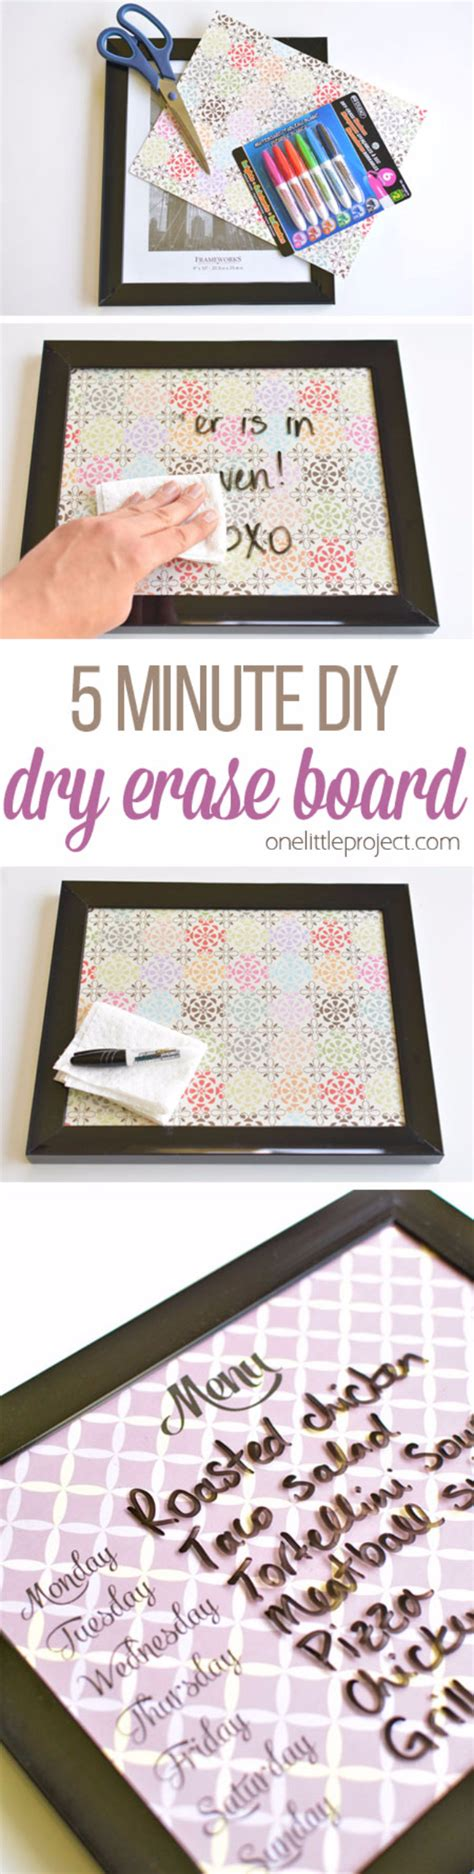 easy diy projects to sell 41 of the easiest diys